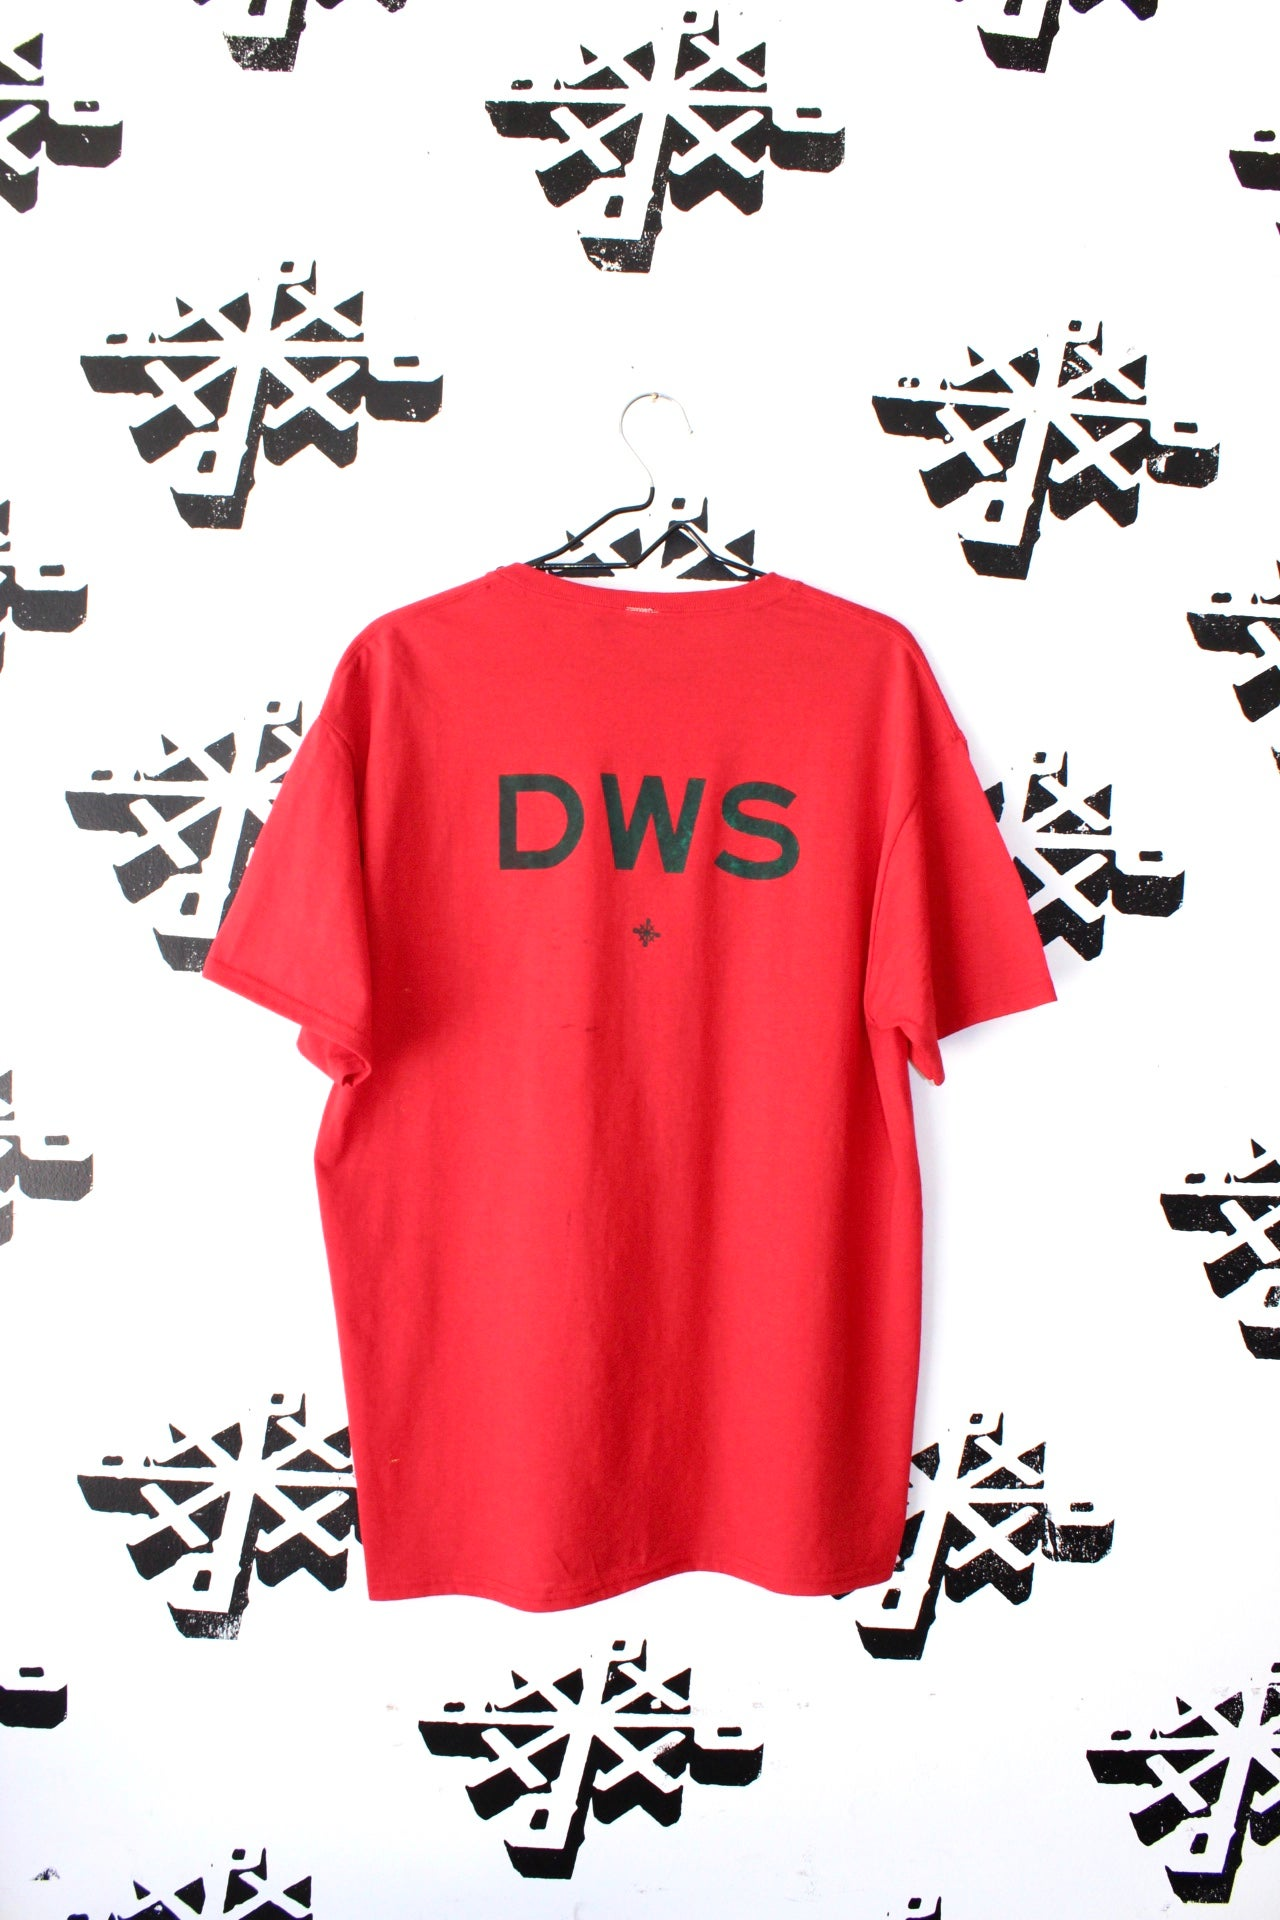 Image of DWS tee in red